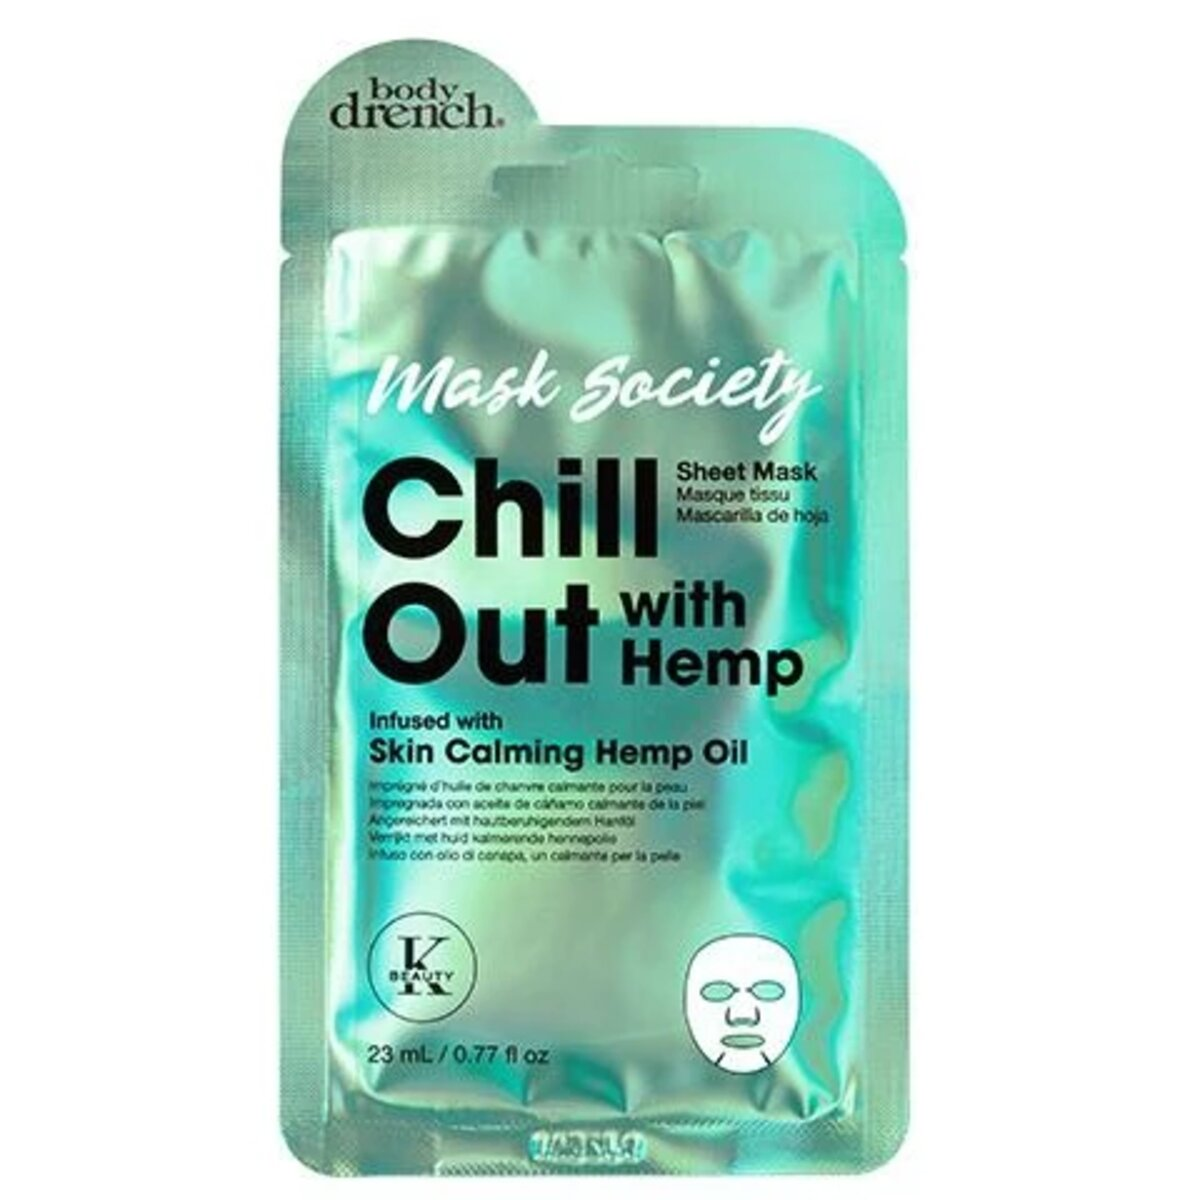 MASK SOCIETY CHILL OUT MASCARILLA FACIAL - BODY DRENCH